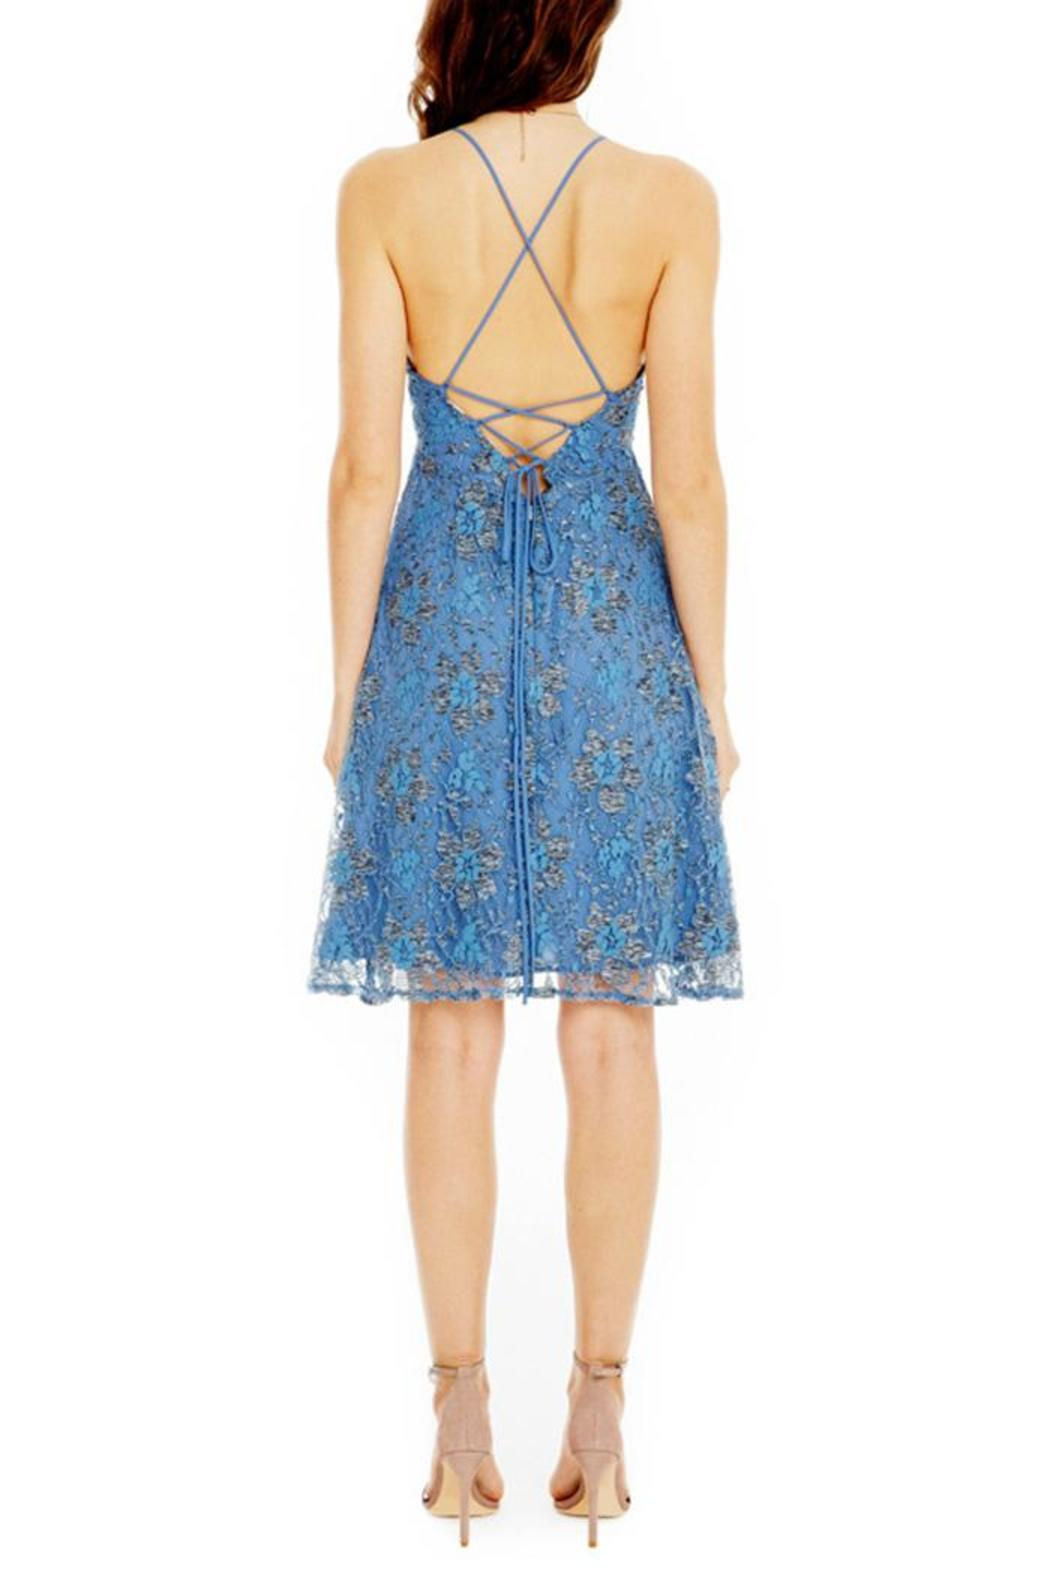 ASTR Periwinkle Lace Dress - Front Full Image